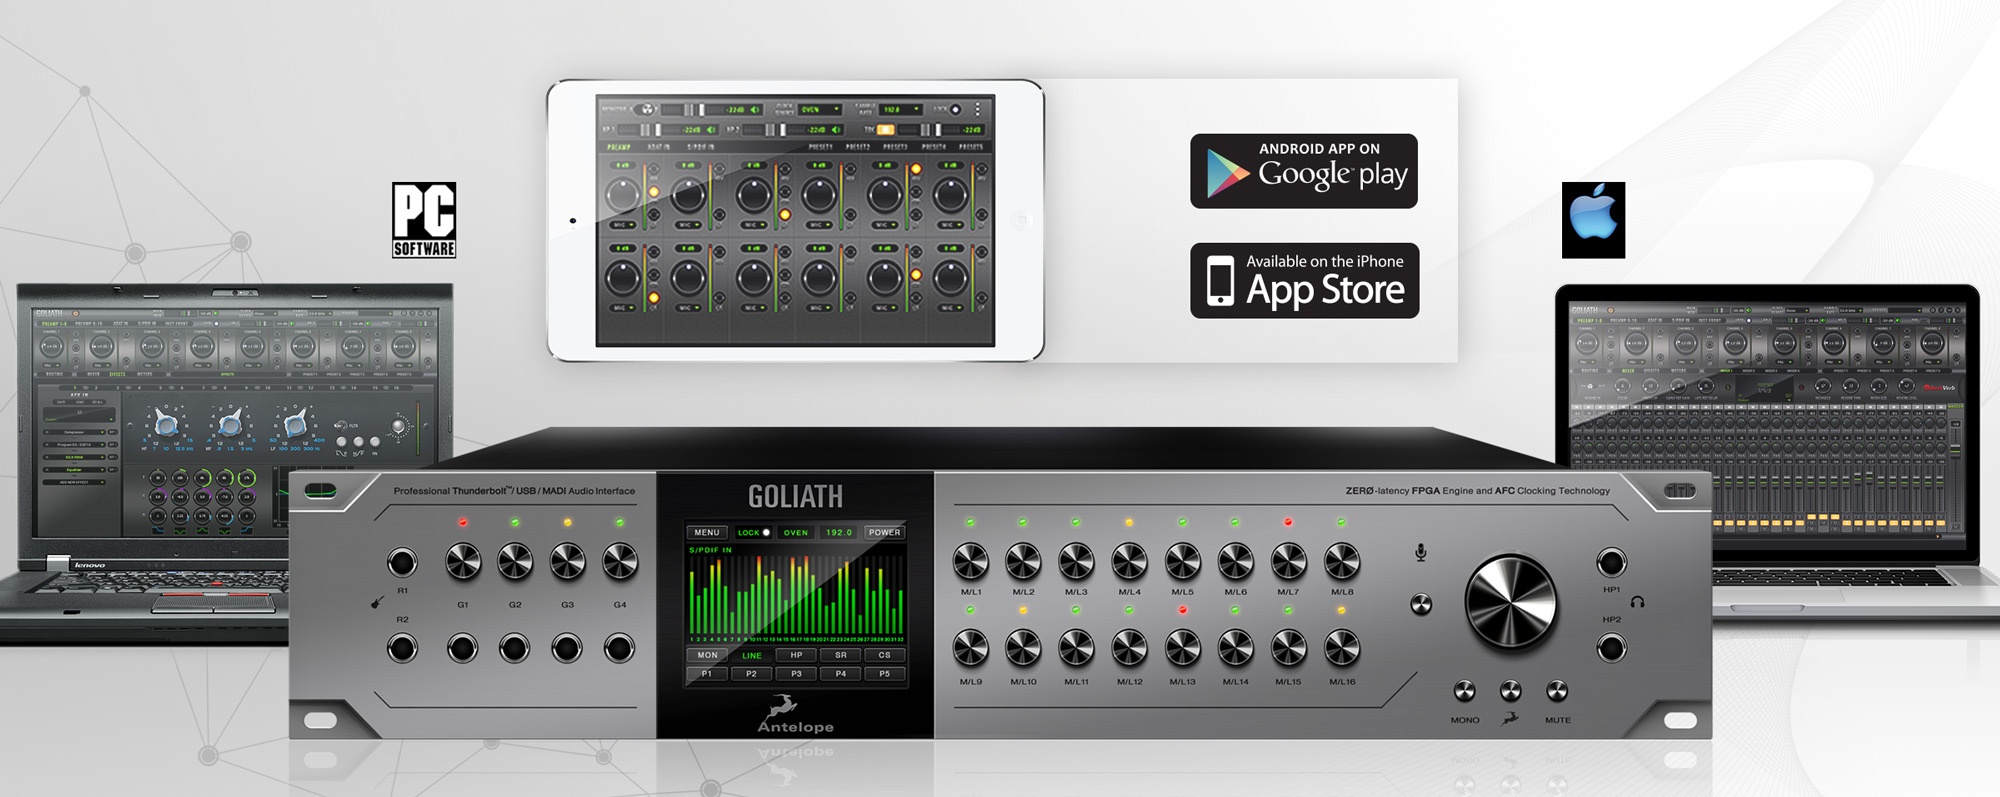 Audio Interface Goliath remotley controlled